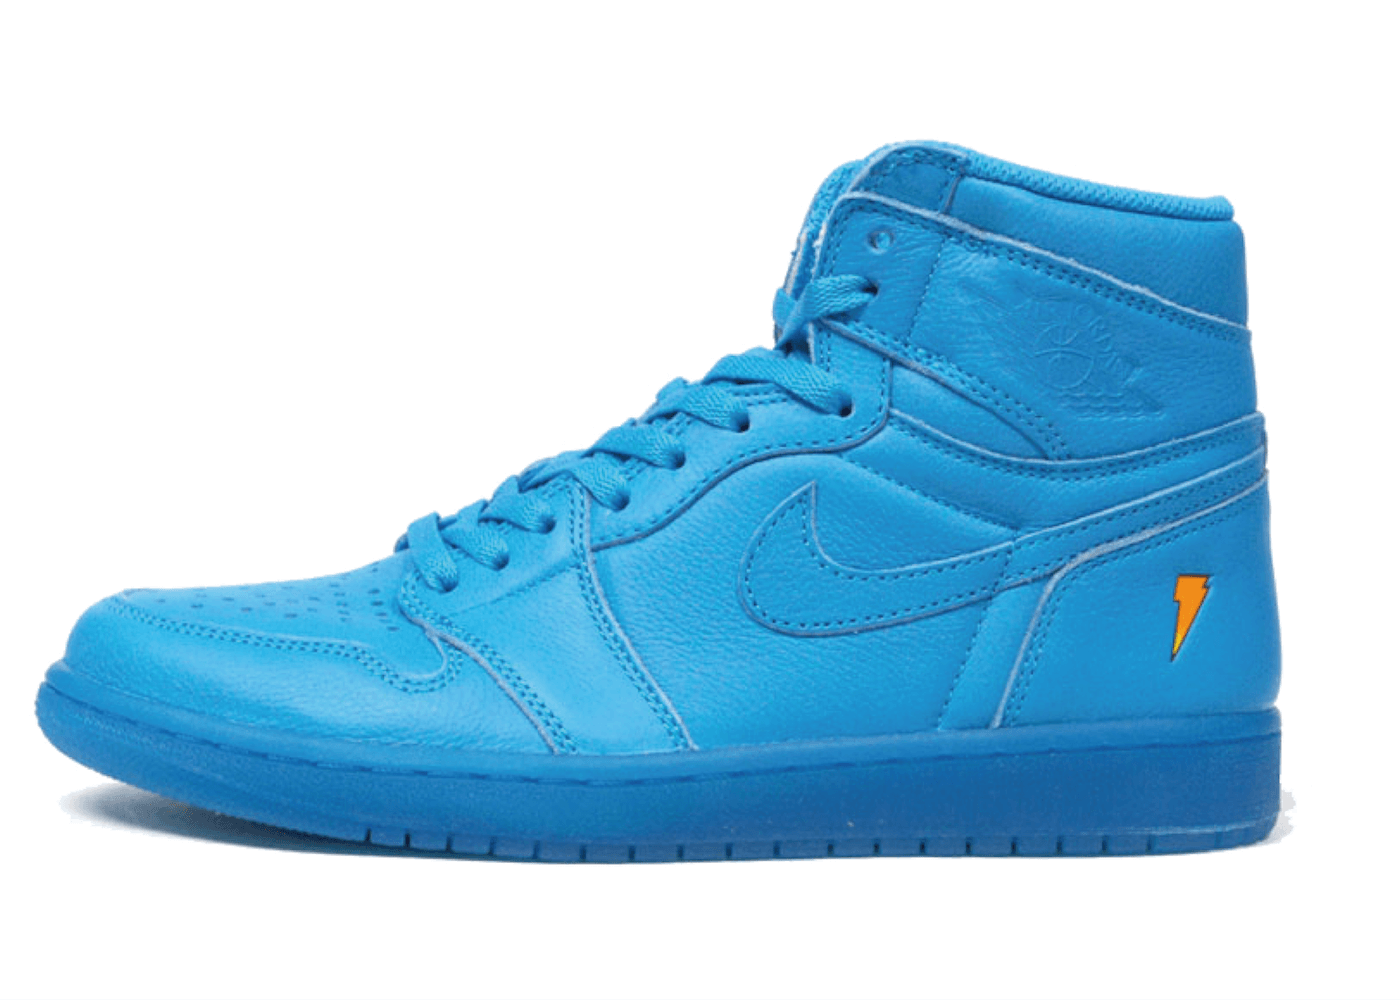 Nike AirJordan 1 Retro High Gatorade Blue Lagoonの写真